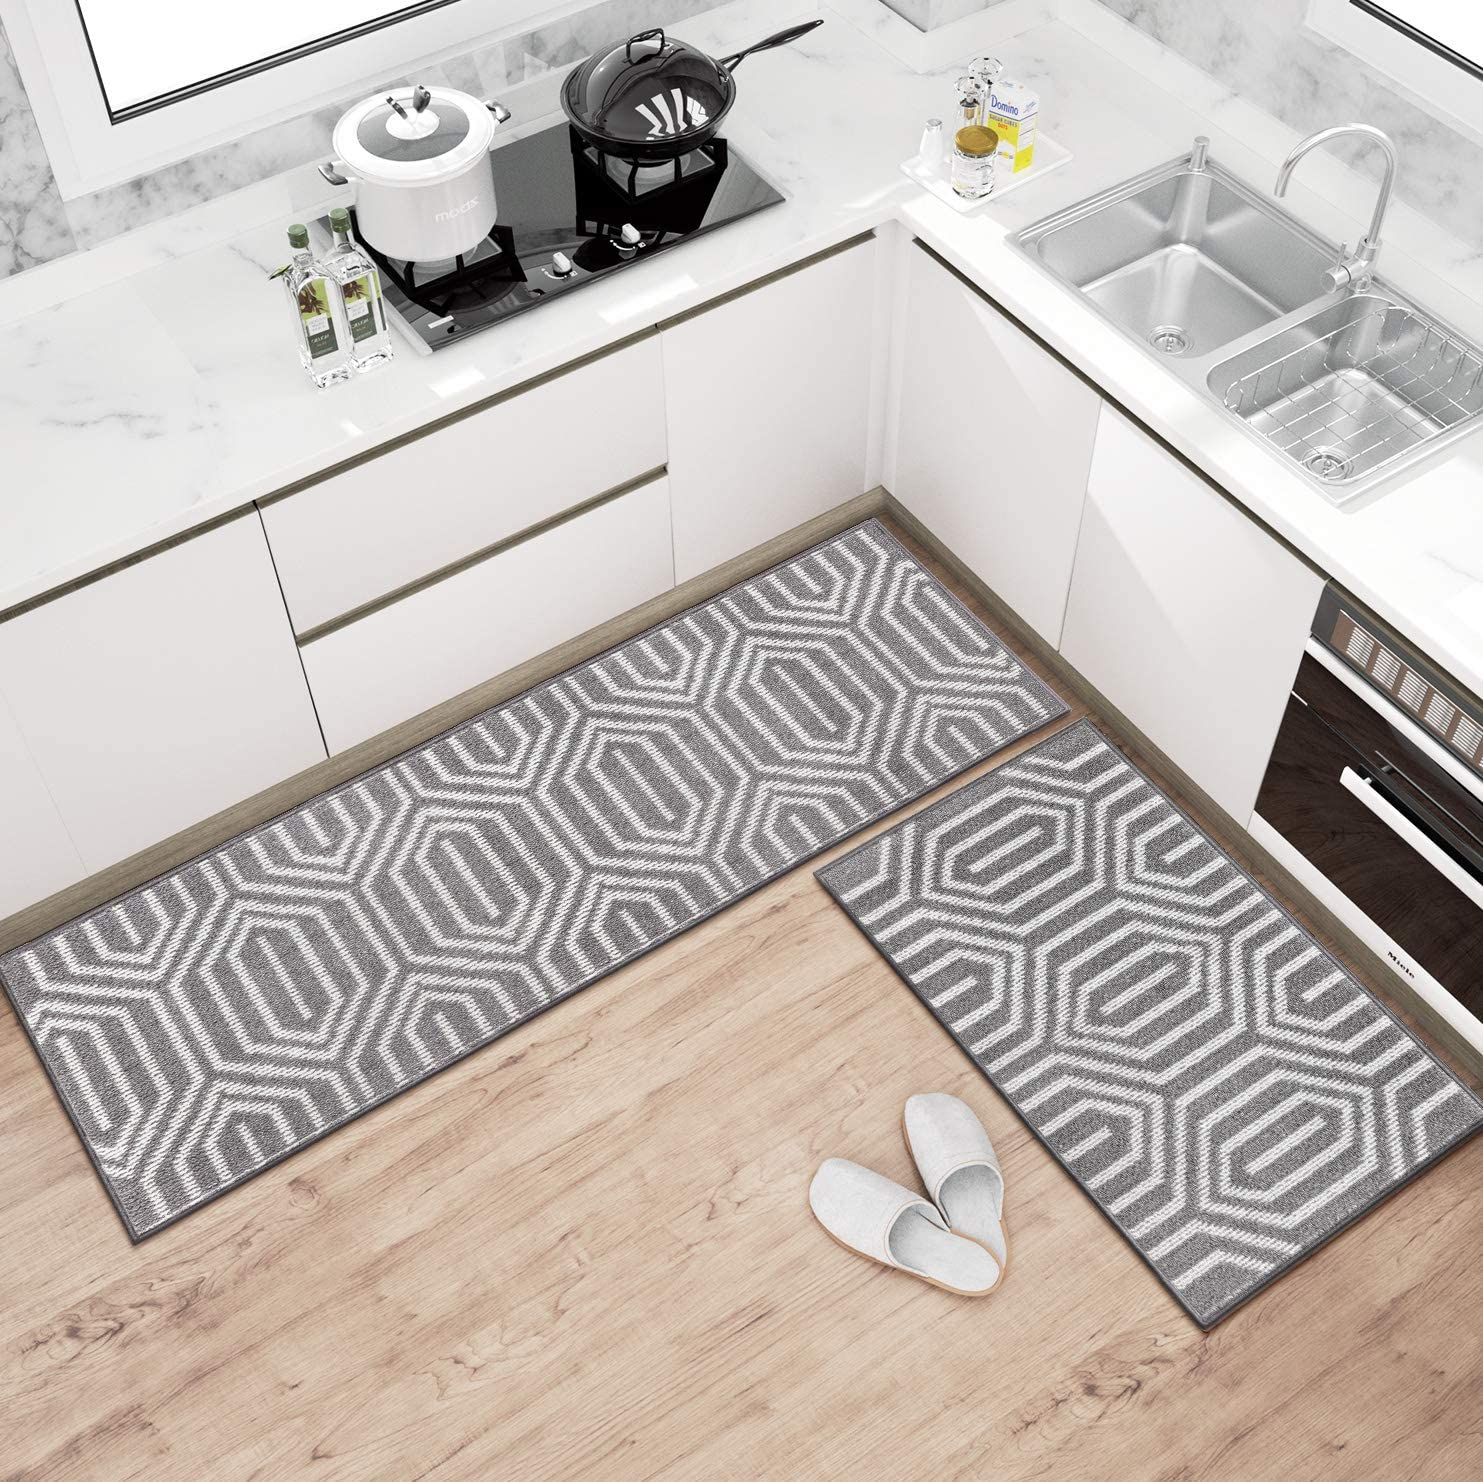 Buy Kitchen Rugs and Mats Washable [9 PCS], Non Skid Soft ...